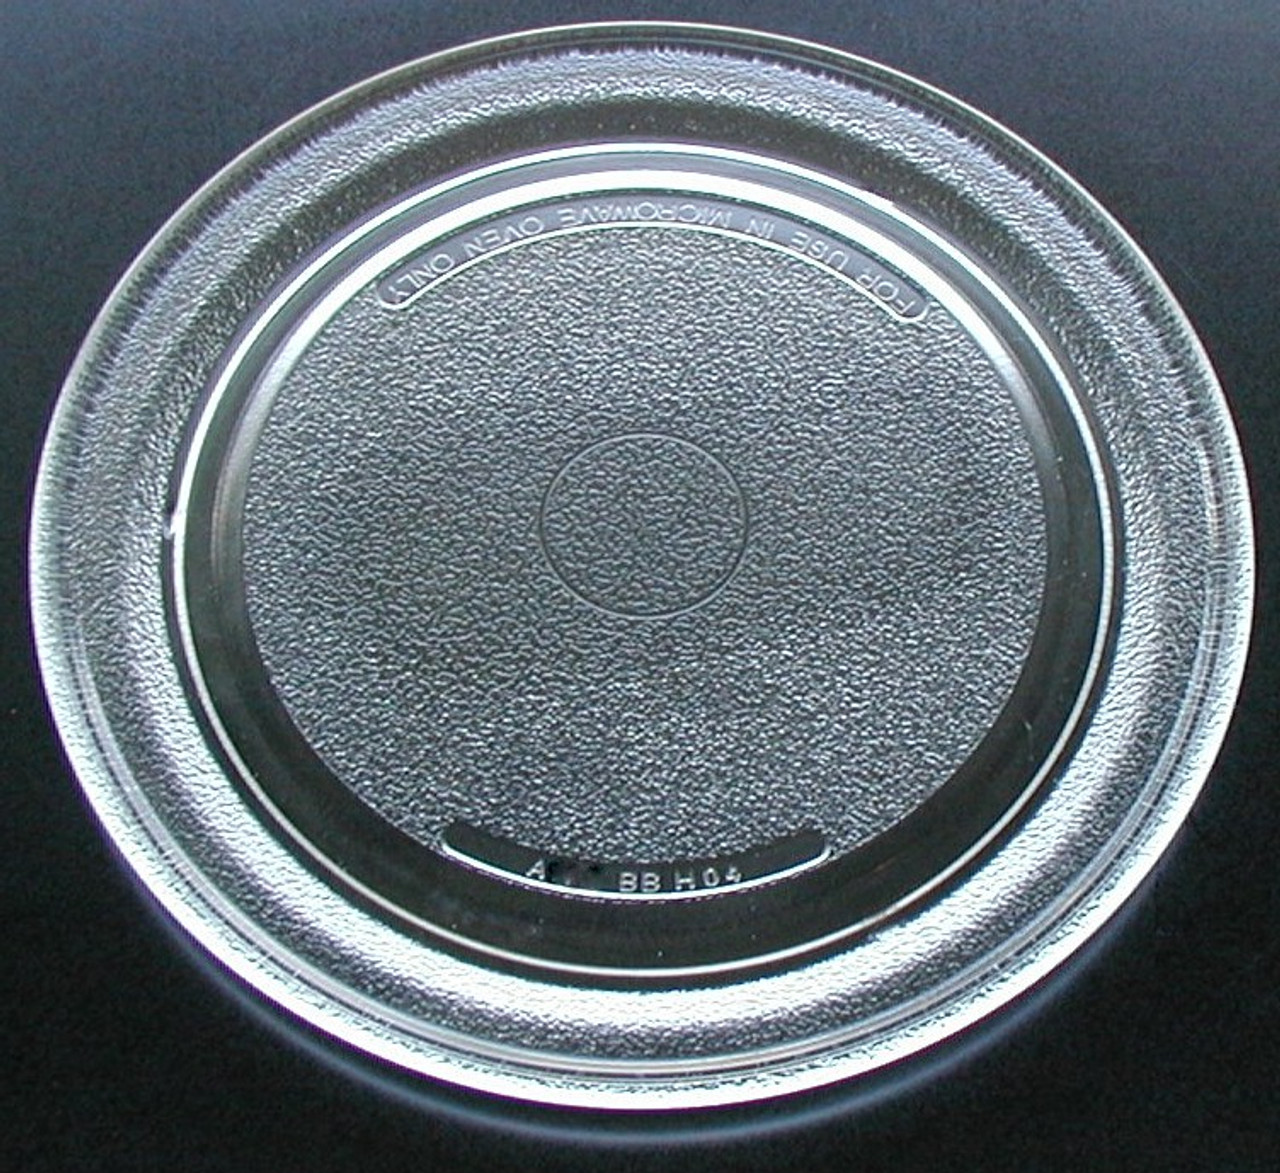 Sharp Microwave Glass Turntable Plate Tray for Model R551Z and SMC1840 Models R551ZS